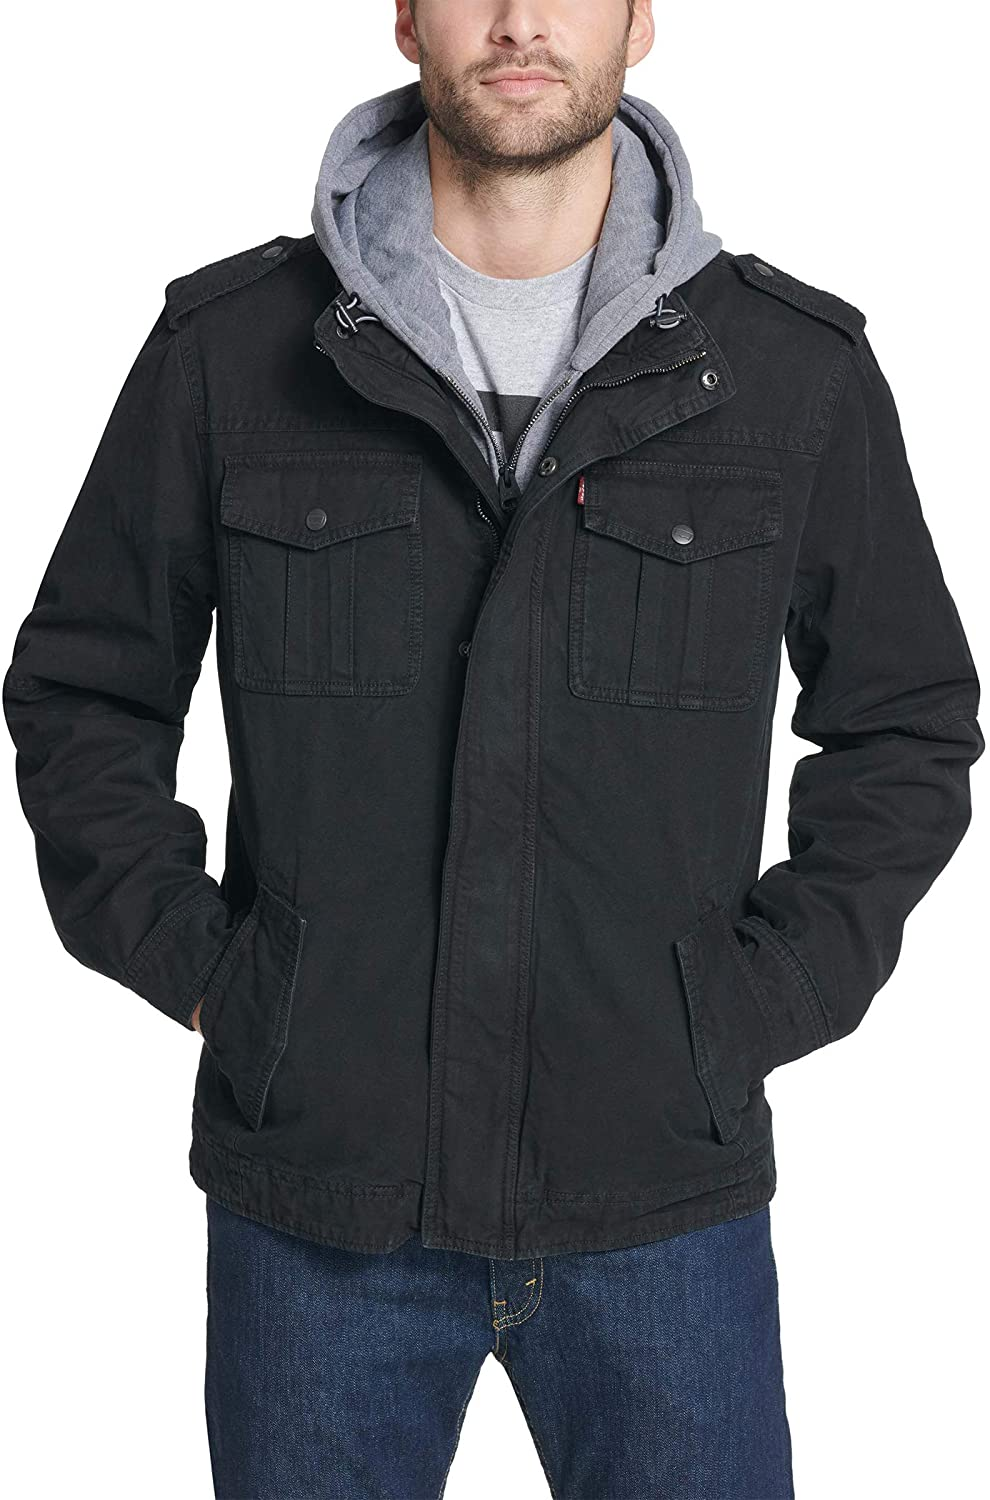 Levi's mens Washed Cotton Hooded Military Jacket